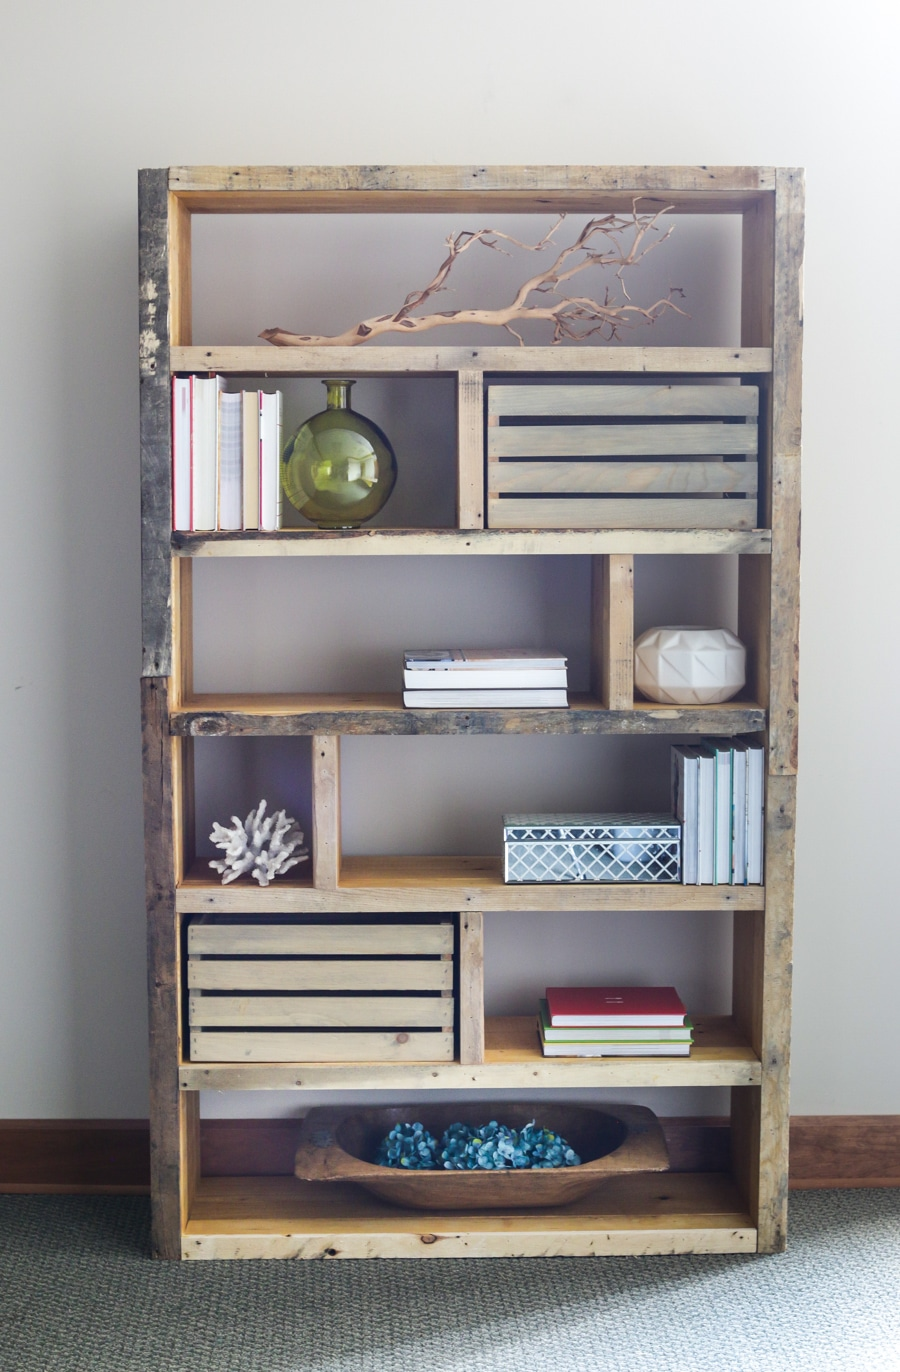 How to build a DIY crate pallet bookshelf